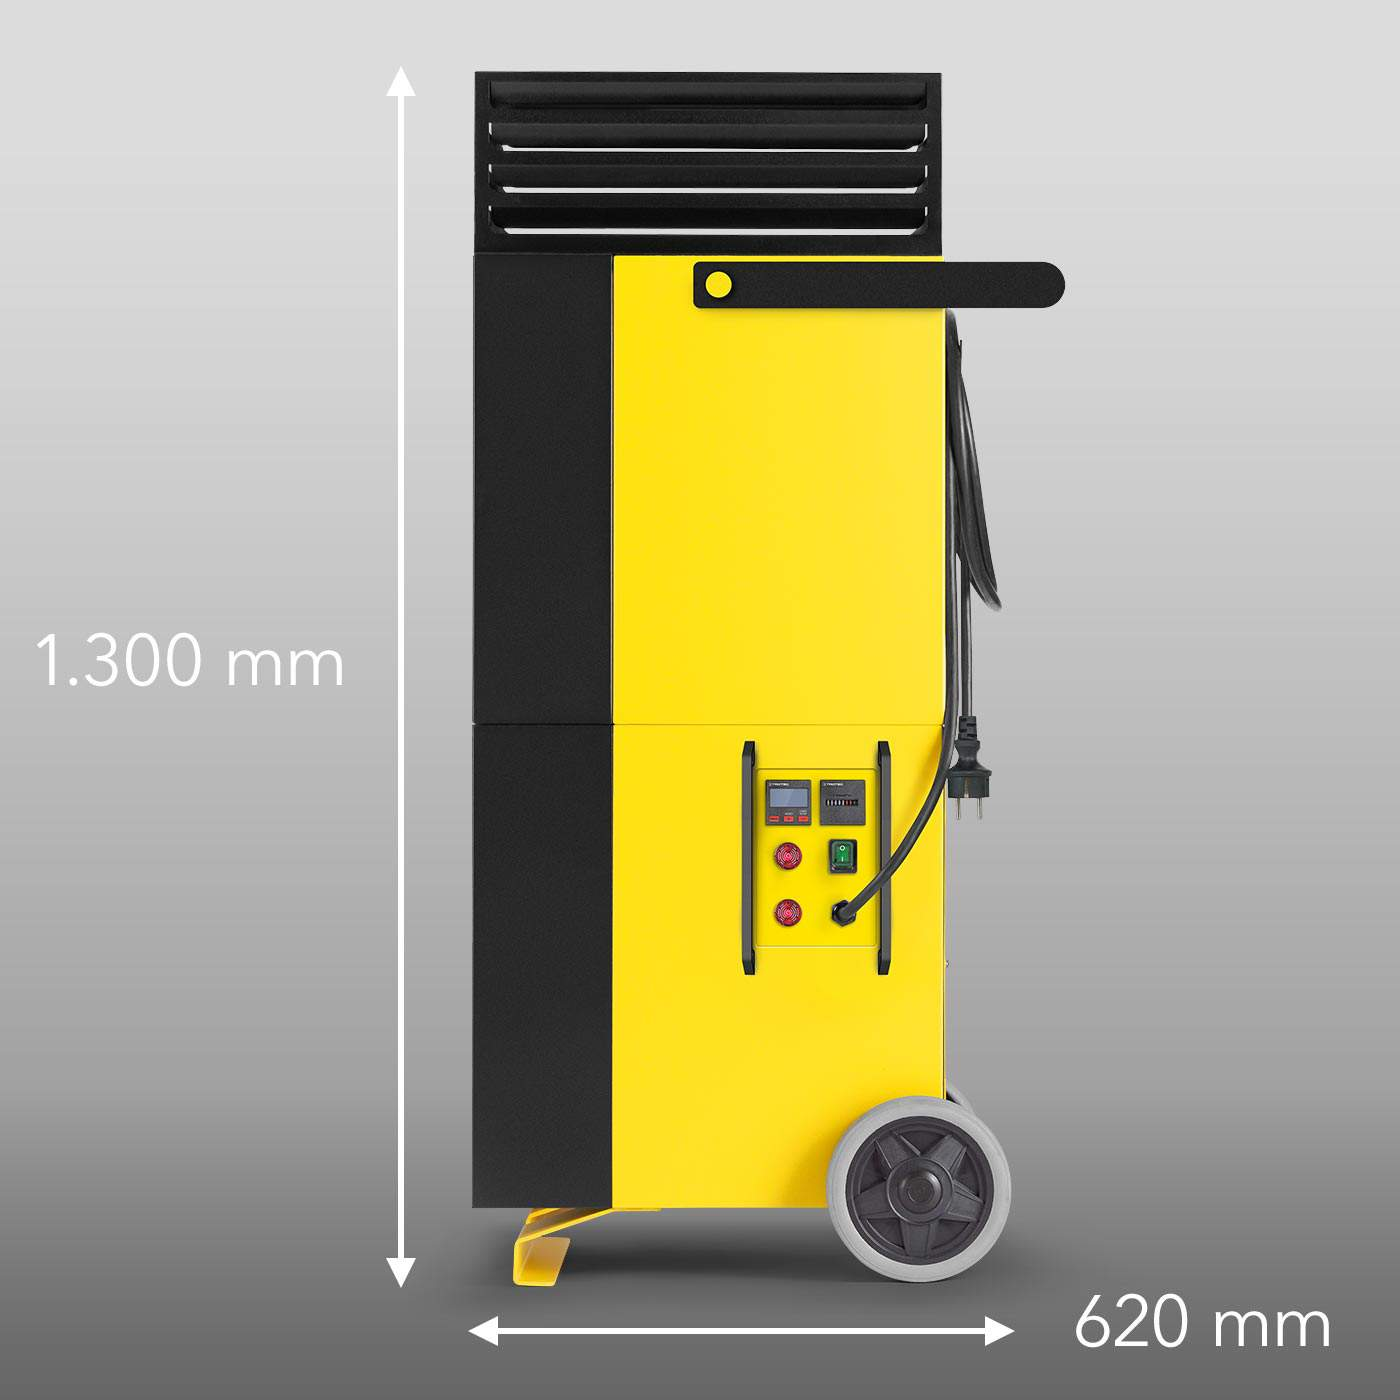 Side view TAC V+ with height and length mm